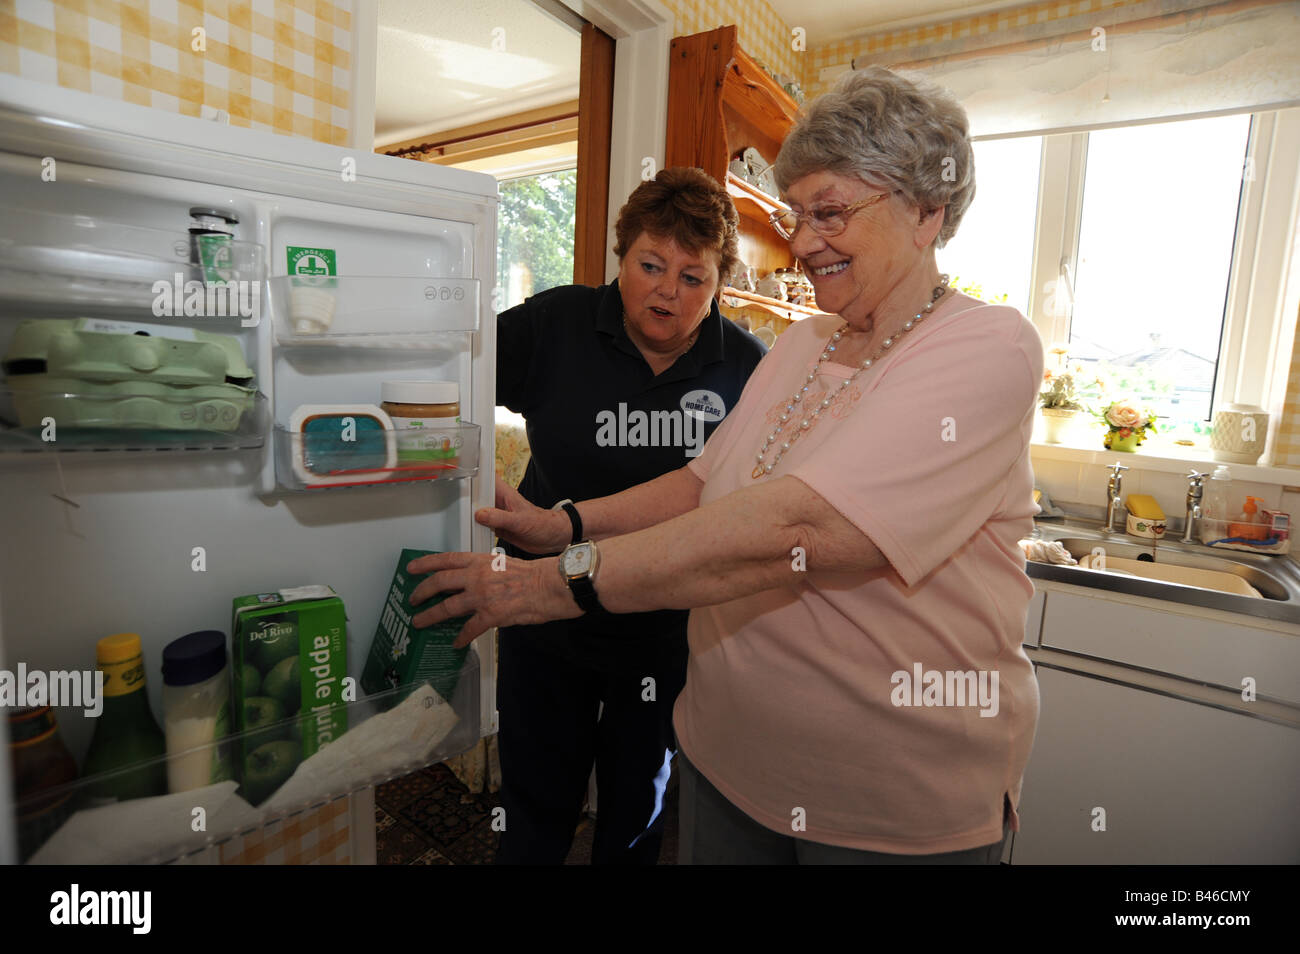 Council Homecare Staff enable elderly and disabled people to live in their own homes through support and help with - Stock Image